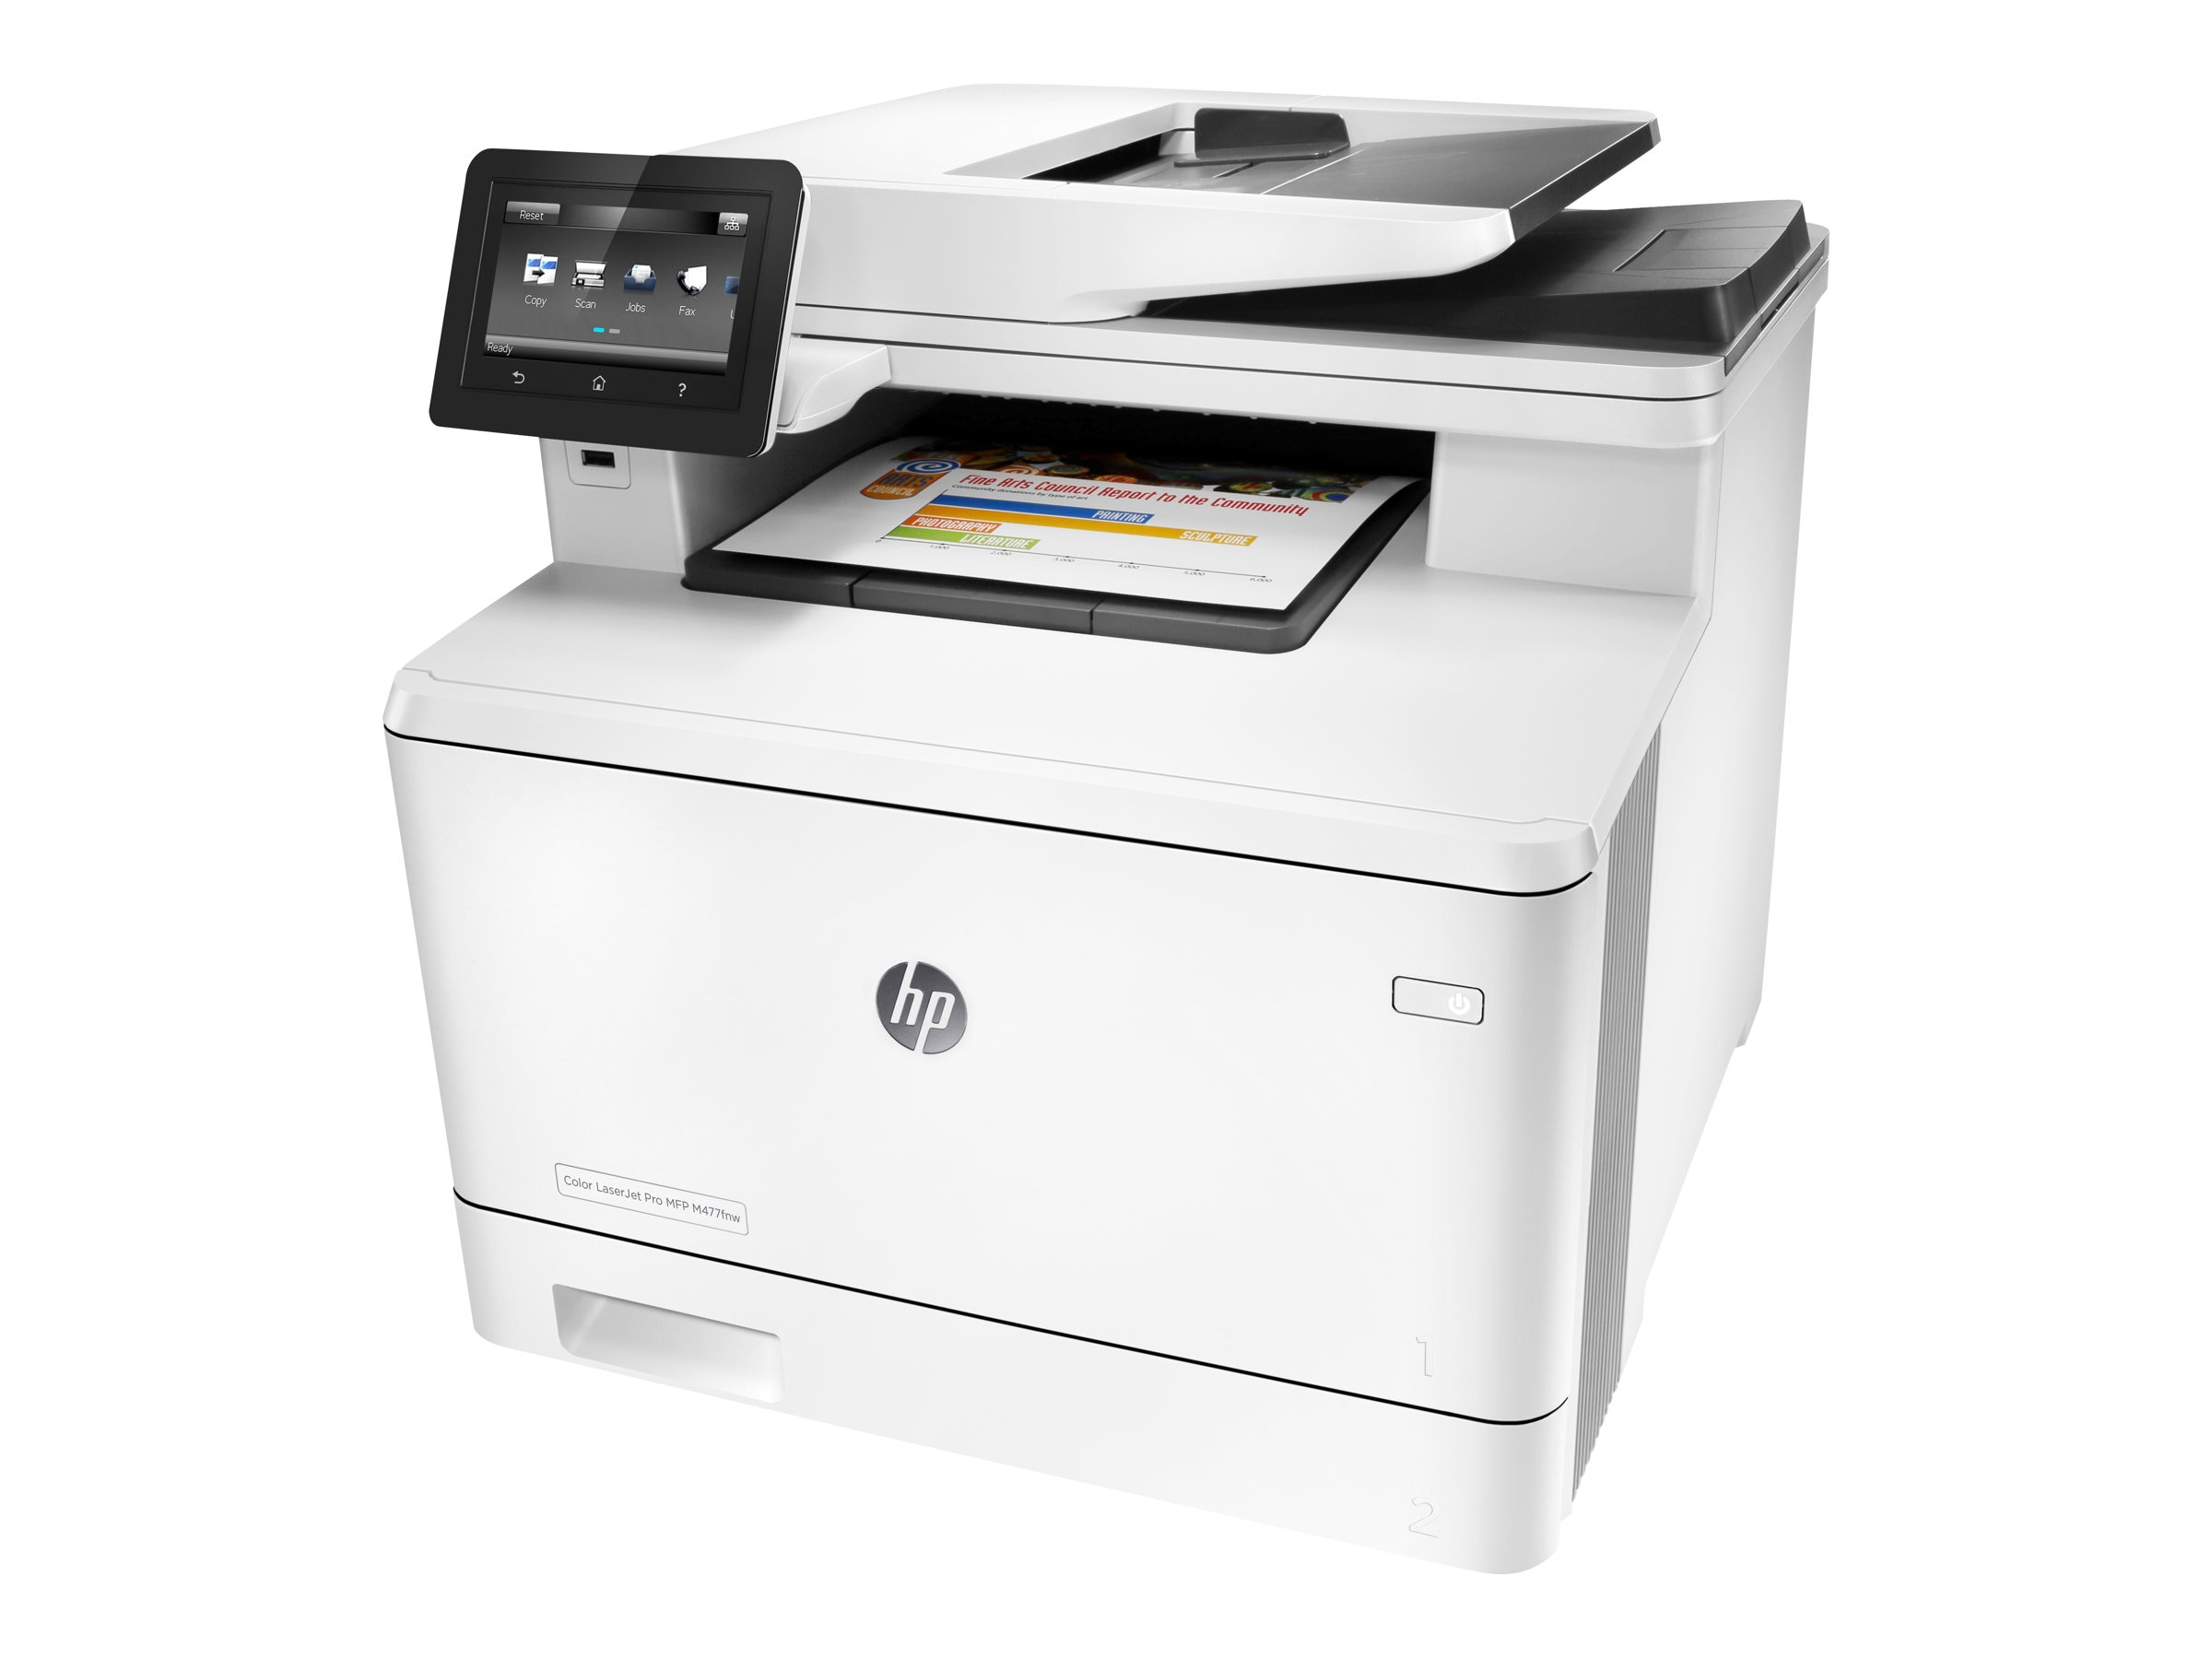 HP Color LaserJet Pro MFP M477fnw ($529 - $200 Instant Rebate = $329 Expires 4 30 2016), CF377A#BGJ, 30006391, MultiFunction - Laser (color)